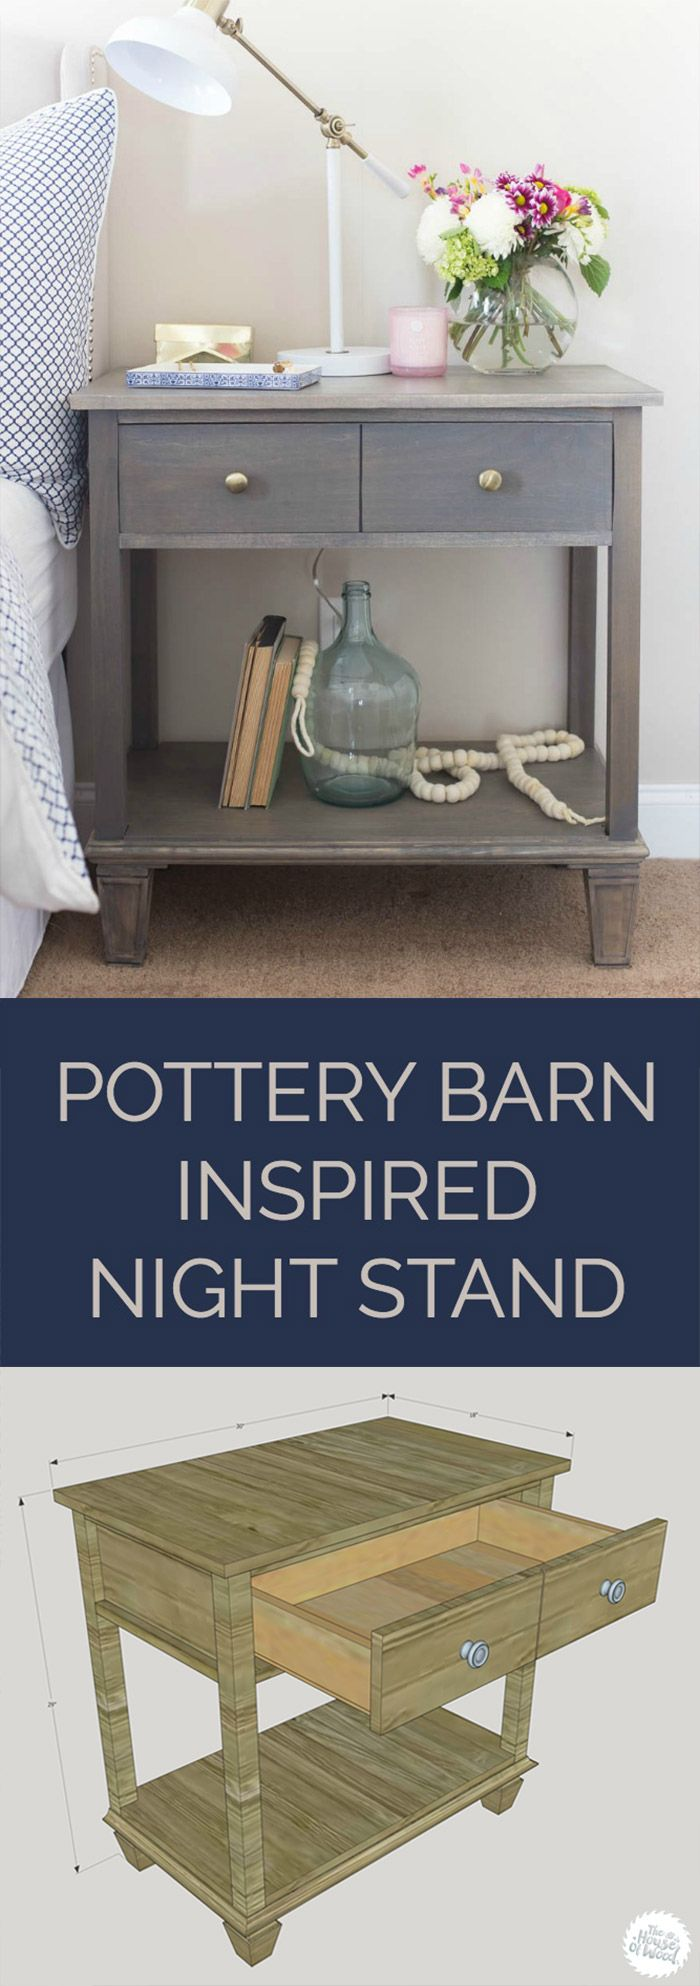 nightstand stands barn seafoam off vintage tables barns pottery night